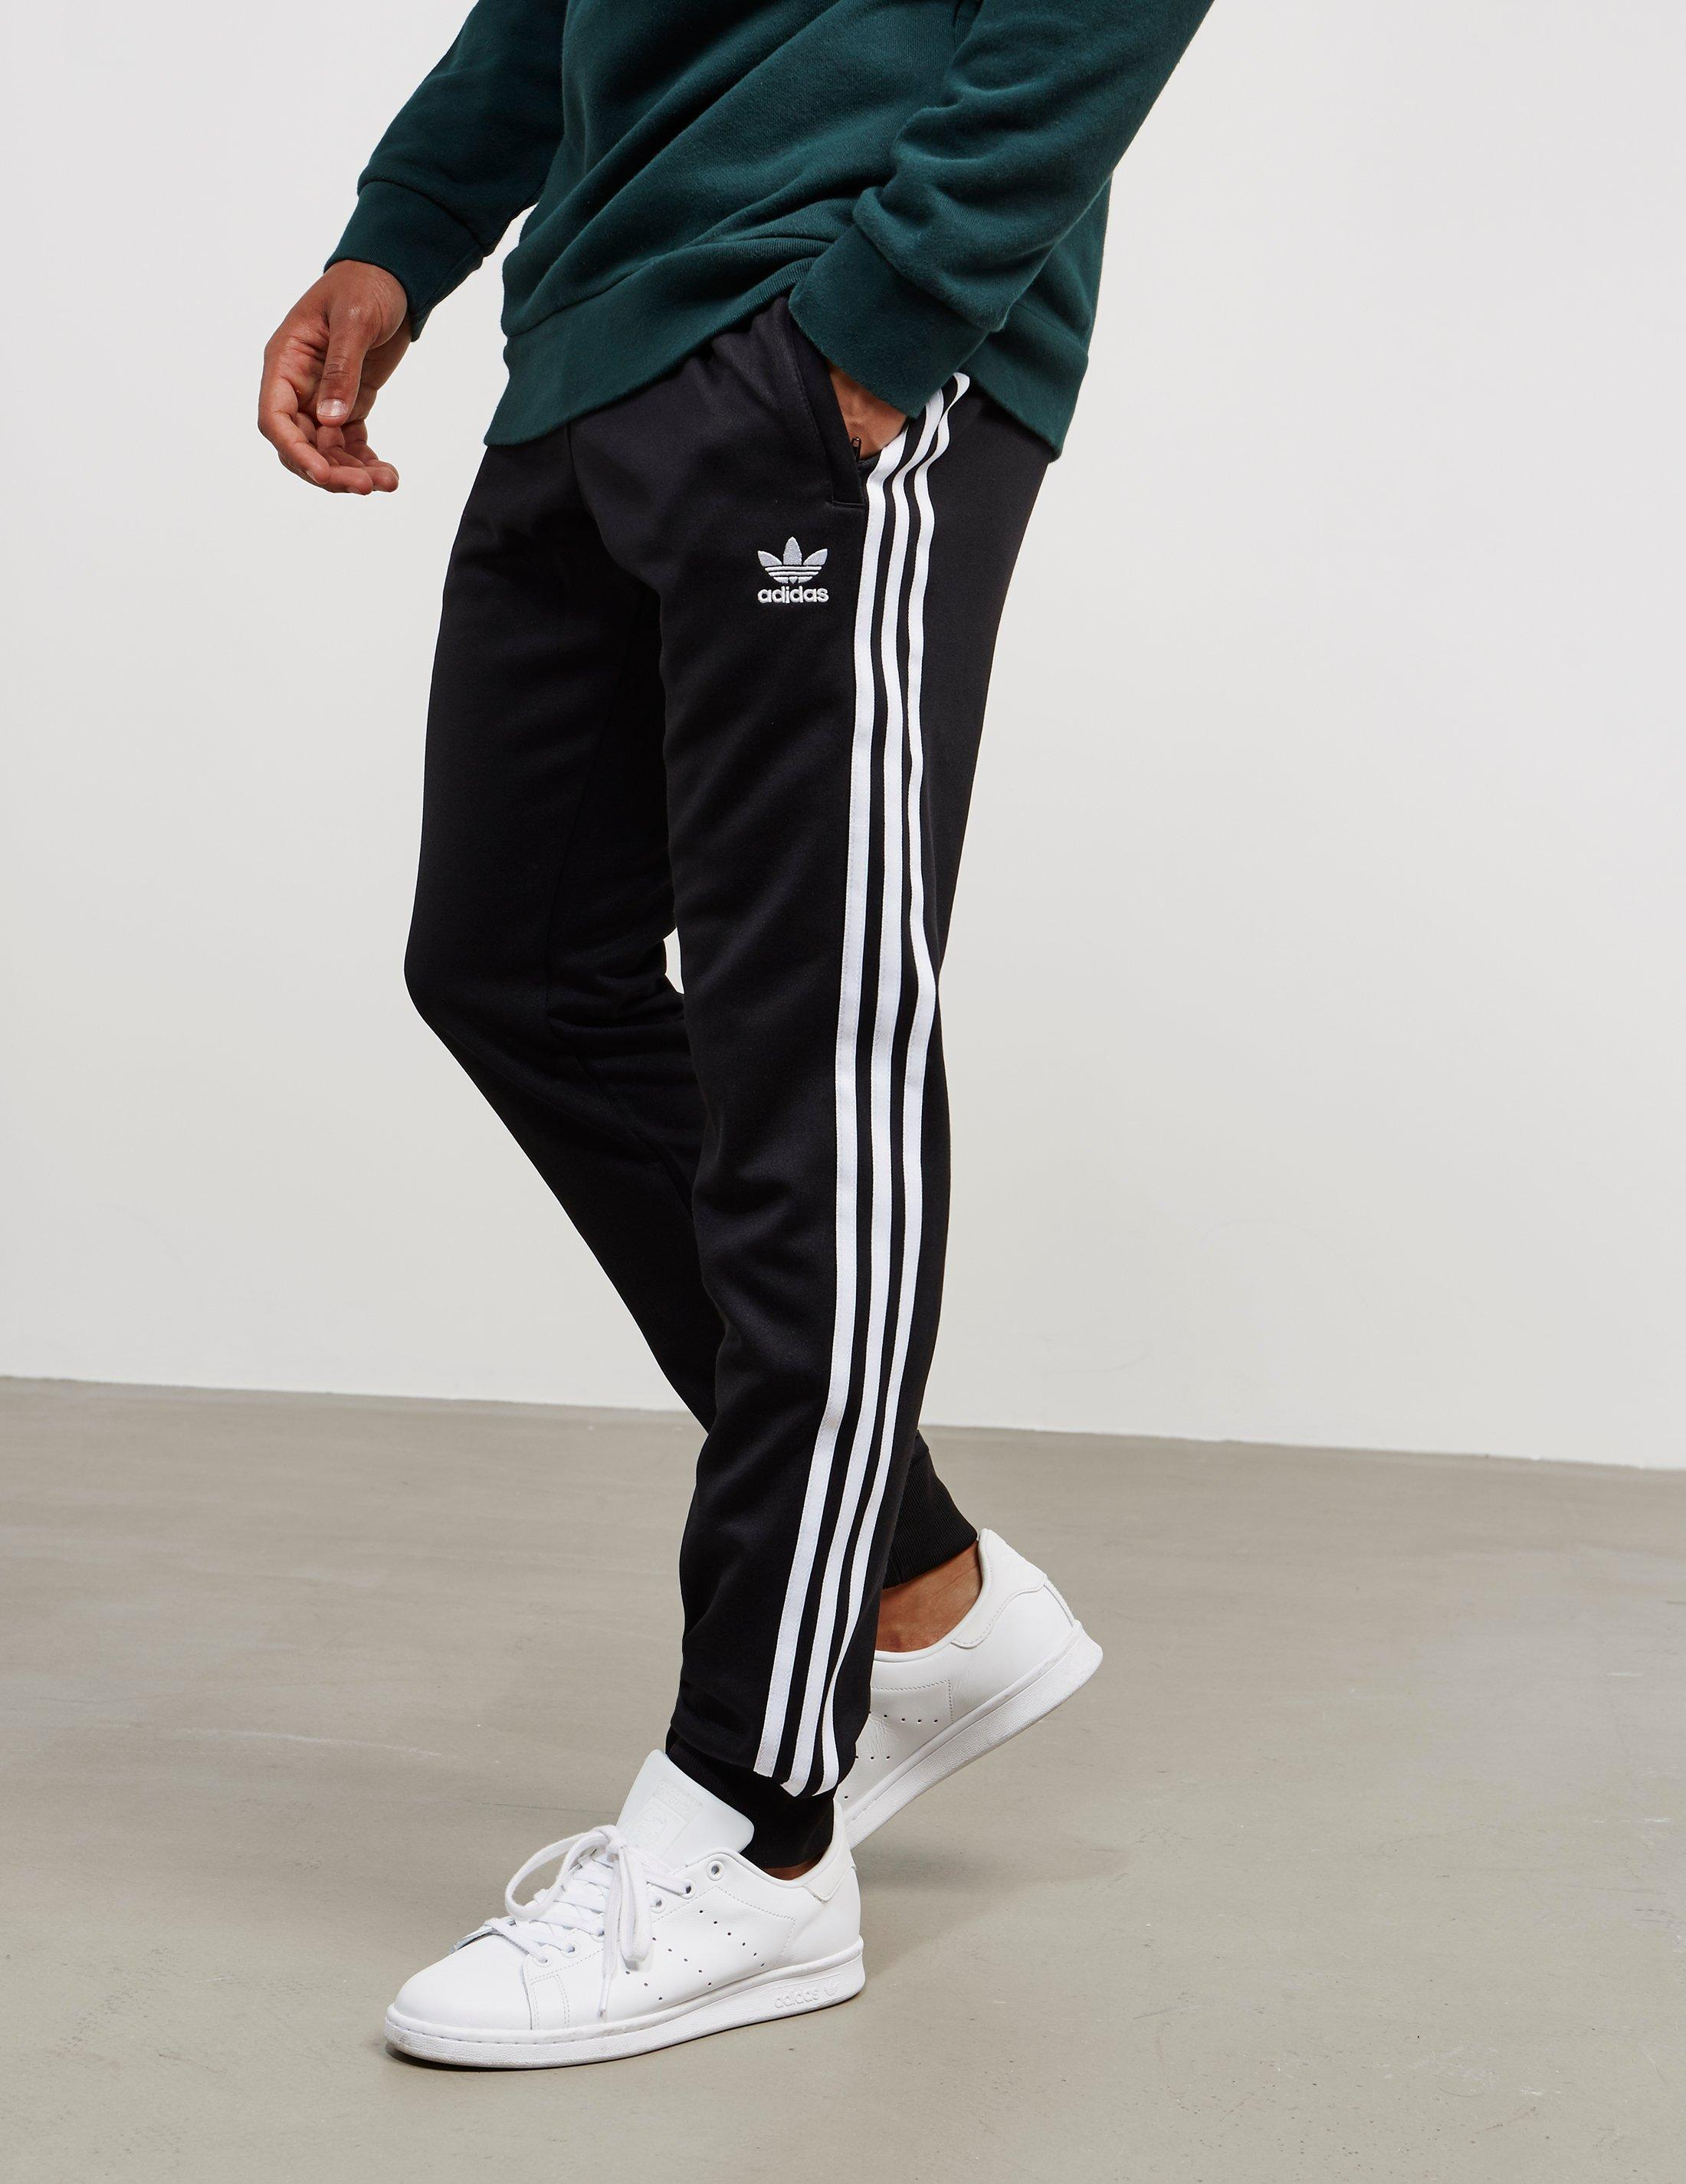 a6e823aff7196 adidas Originals Superstar Cuffed Track Pants Black in Black for Men - Save  36% - Lyst